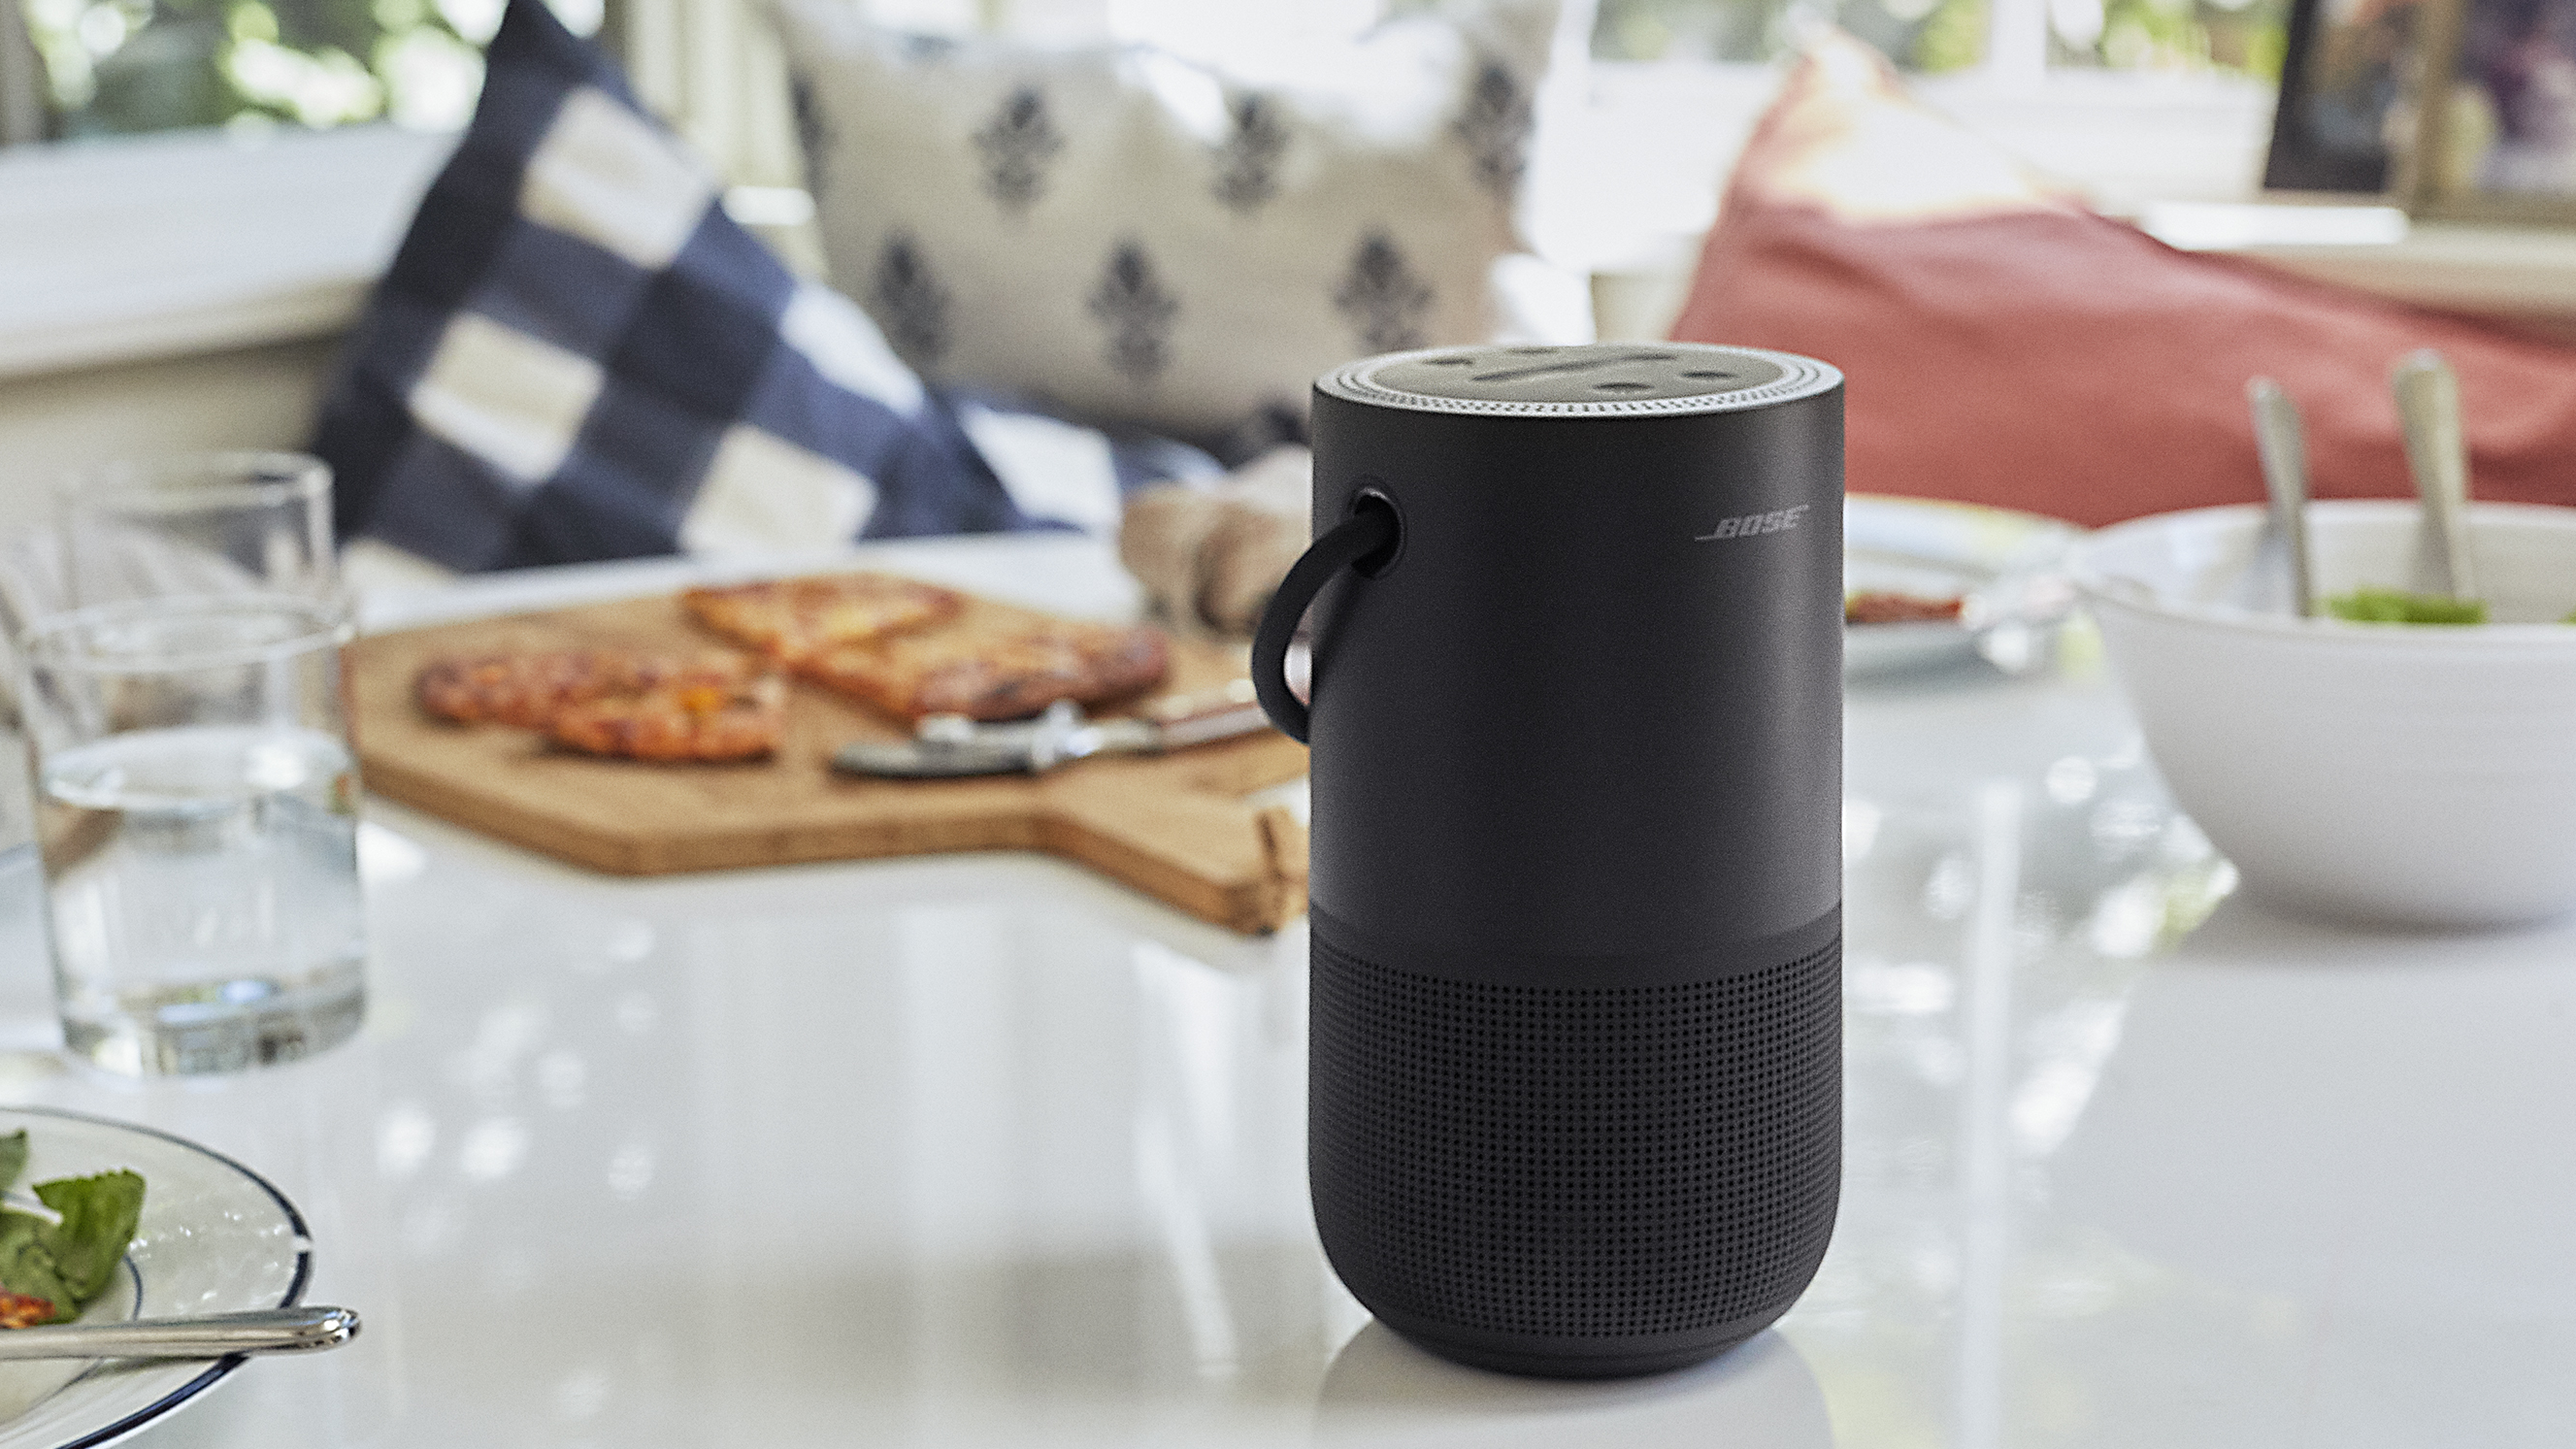 Bose Portable Home Speaker met AirPlay 2